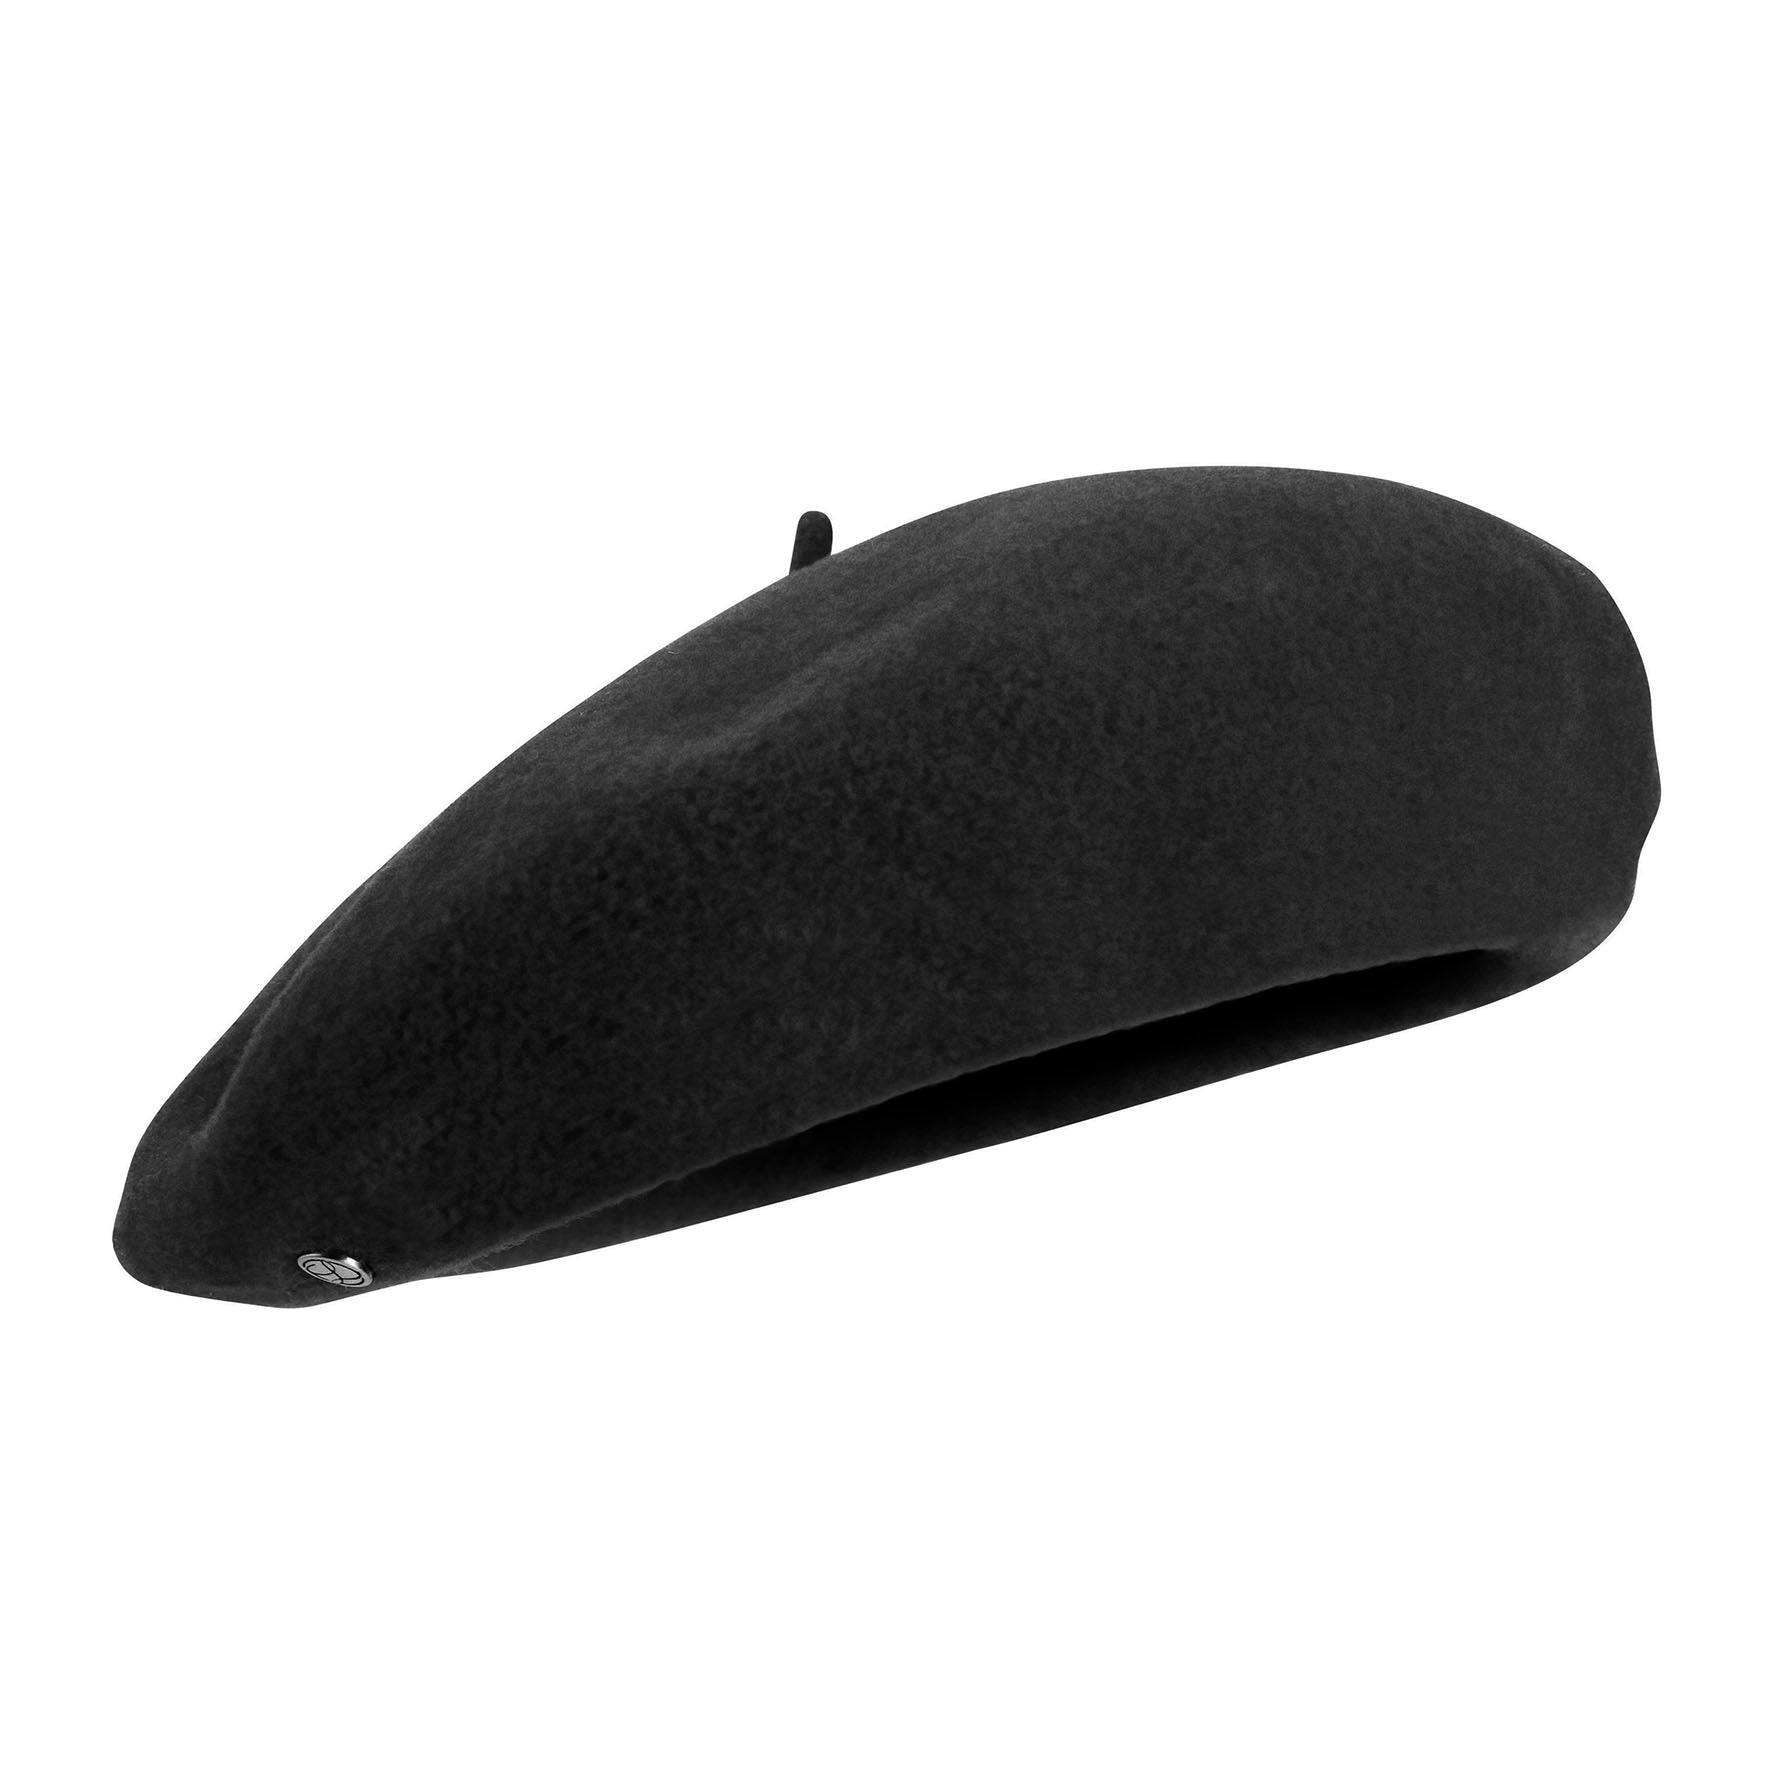 Laulhere - Deluxe Cashmere French Beret with Box - The Cashmere Choice 6b811437b53